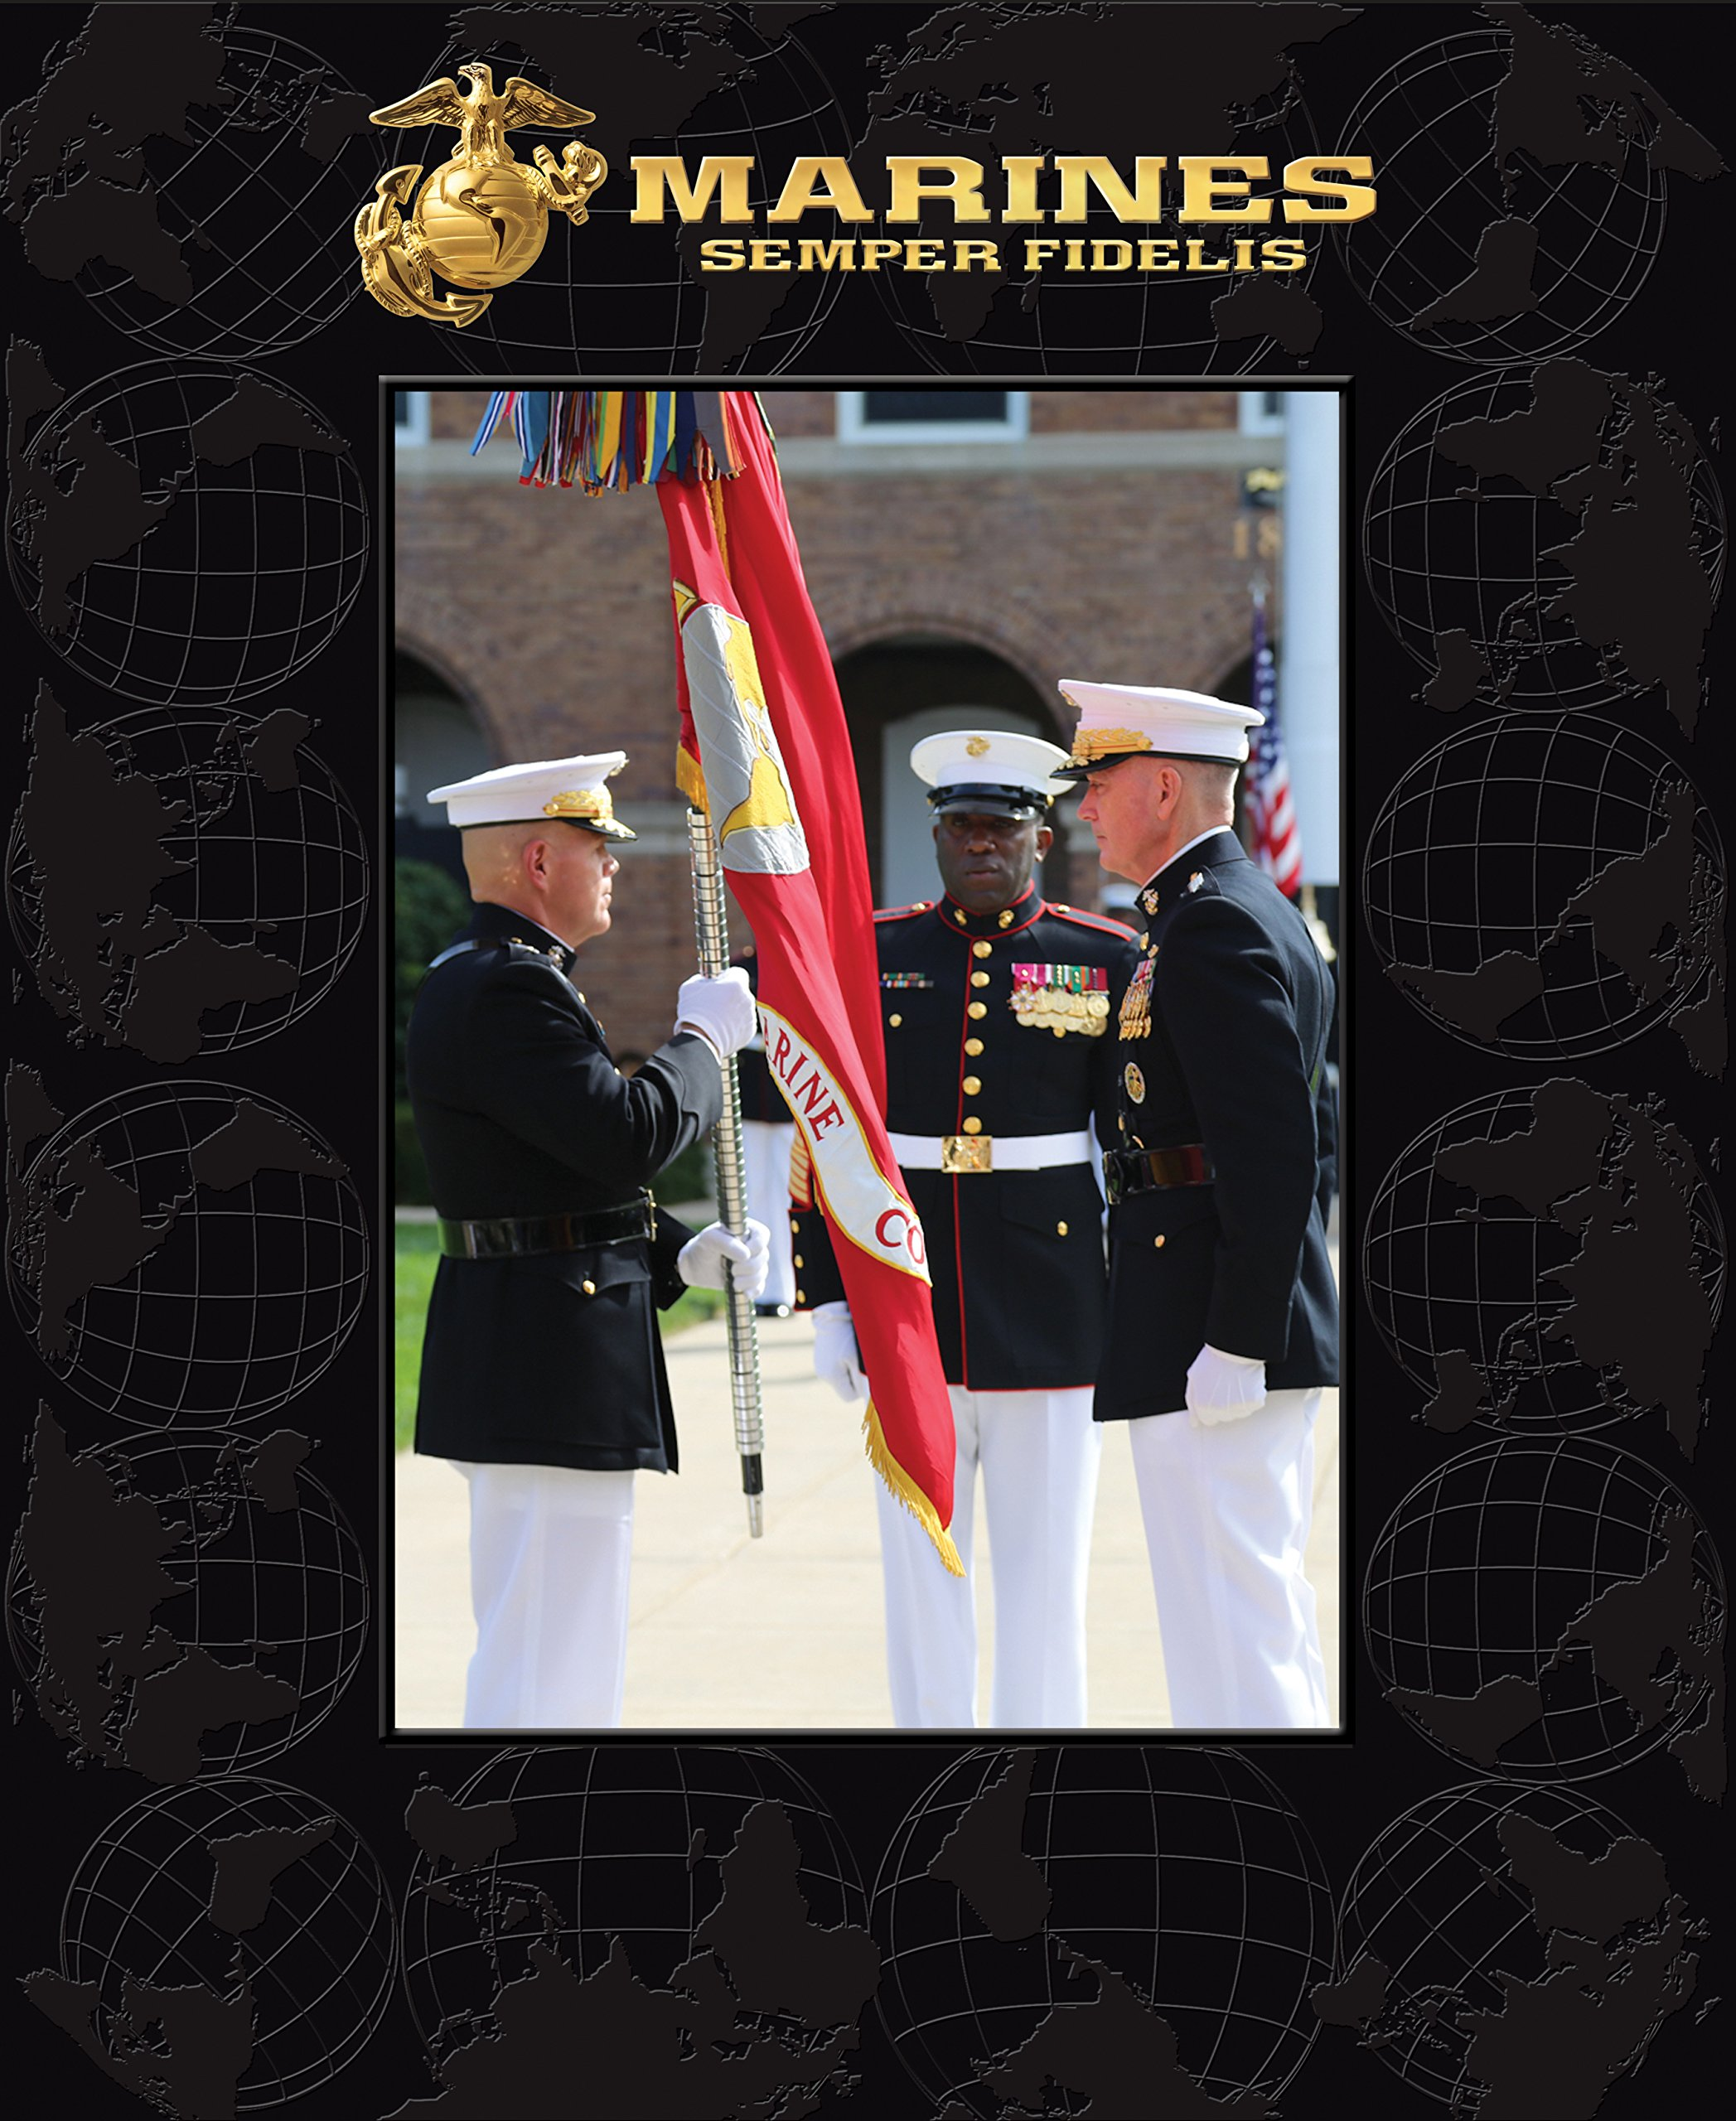 Church Hill Classics US Marine Corps Photo Frame - 5 x 7 Vertical Photo - Features Raised Pattern on Frame